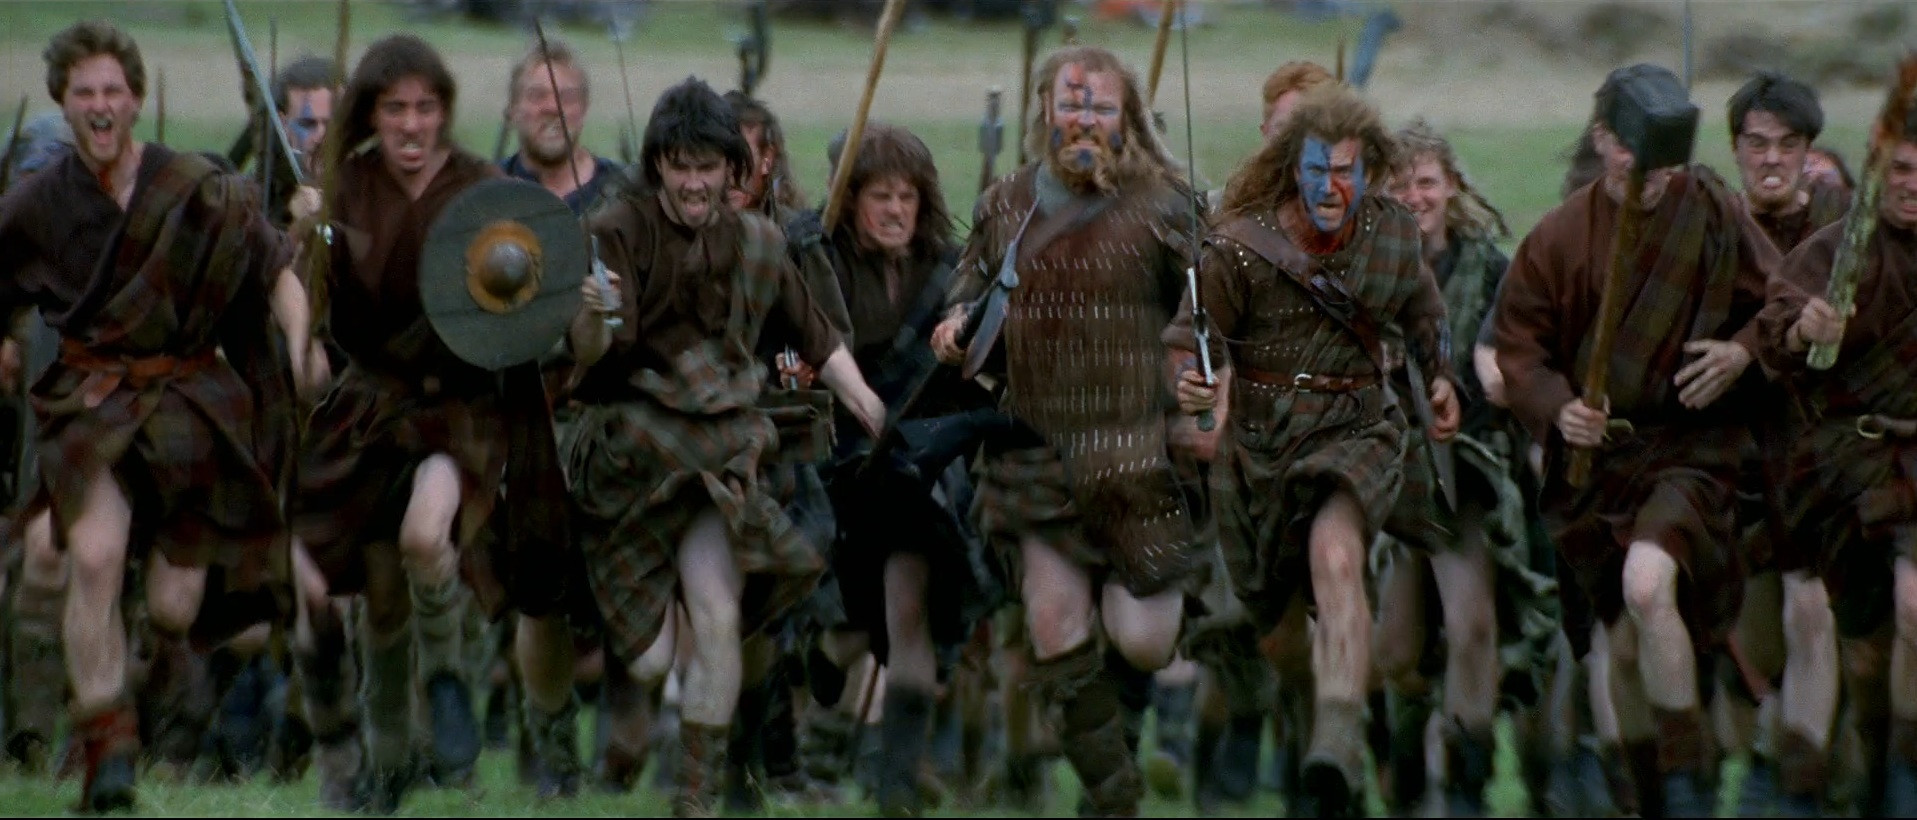 braveheart broomstick essay magic movie myth Braveheart broomstick essay magic movie myth delighted to say my dissertation defence went well: no revisions, and the examining committee recommended me for the.